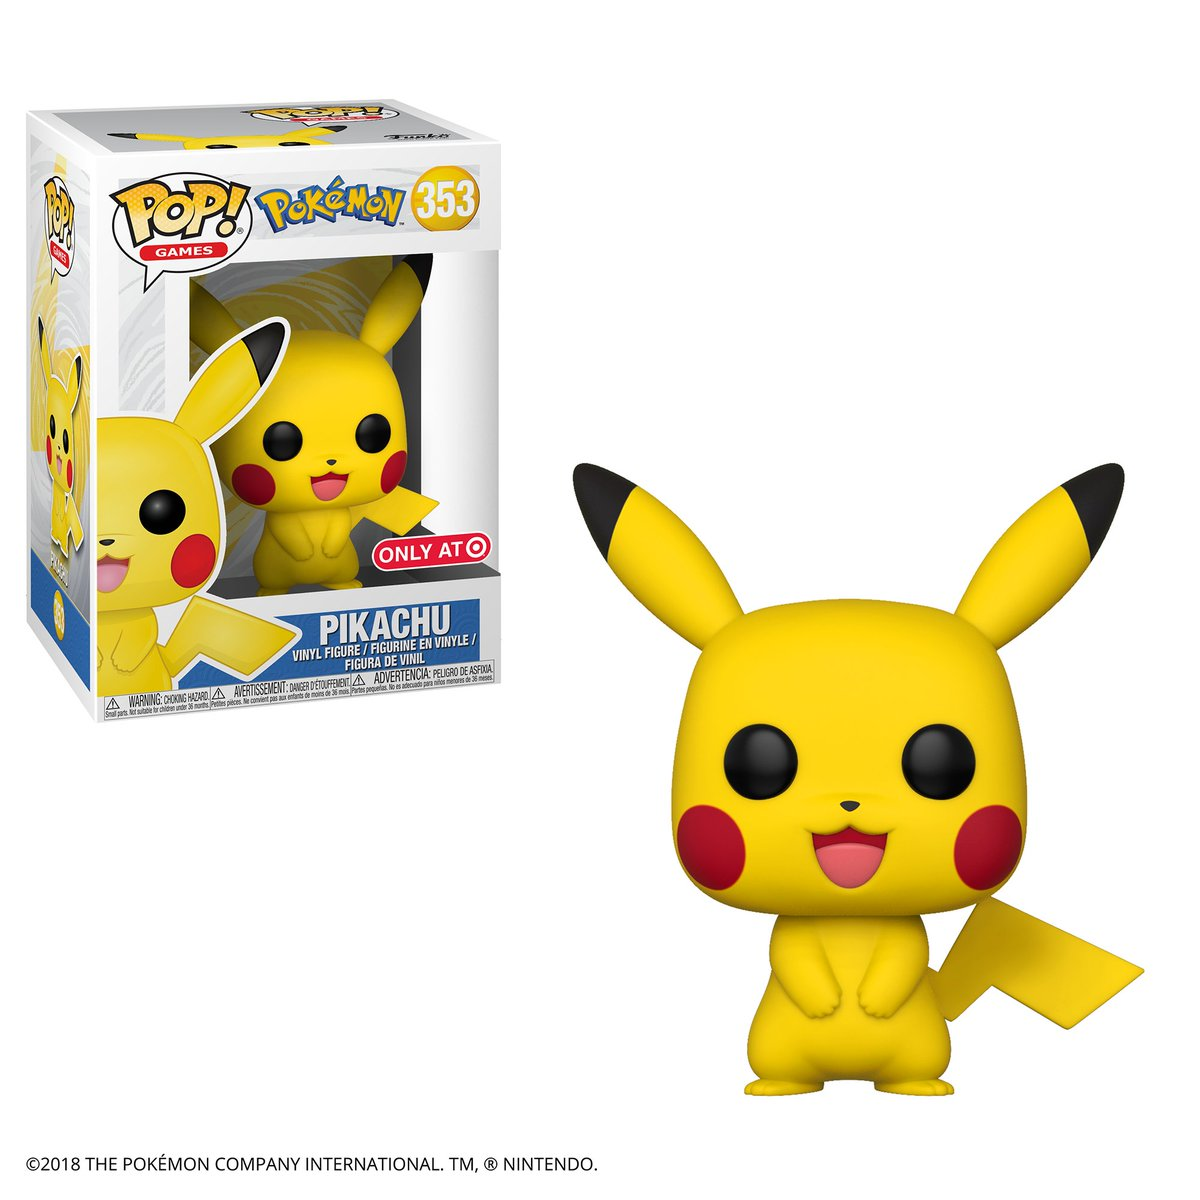 RT & follow @OriginalFunko for the chance to win a @Target exclusive Pikachu Pop!